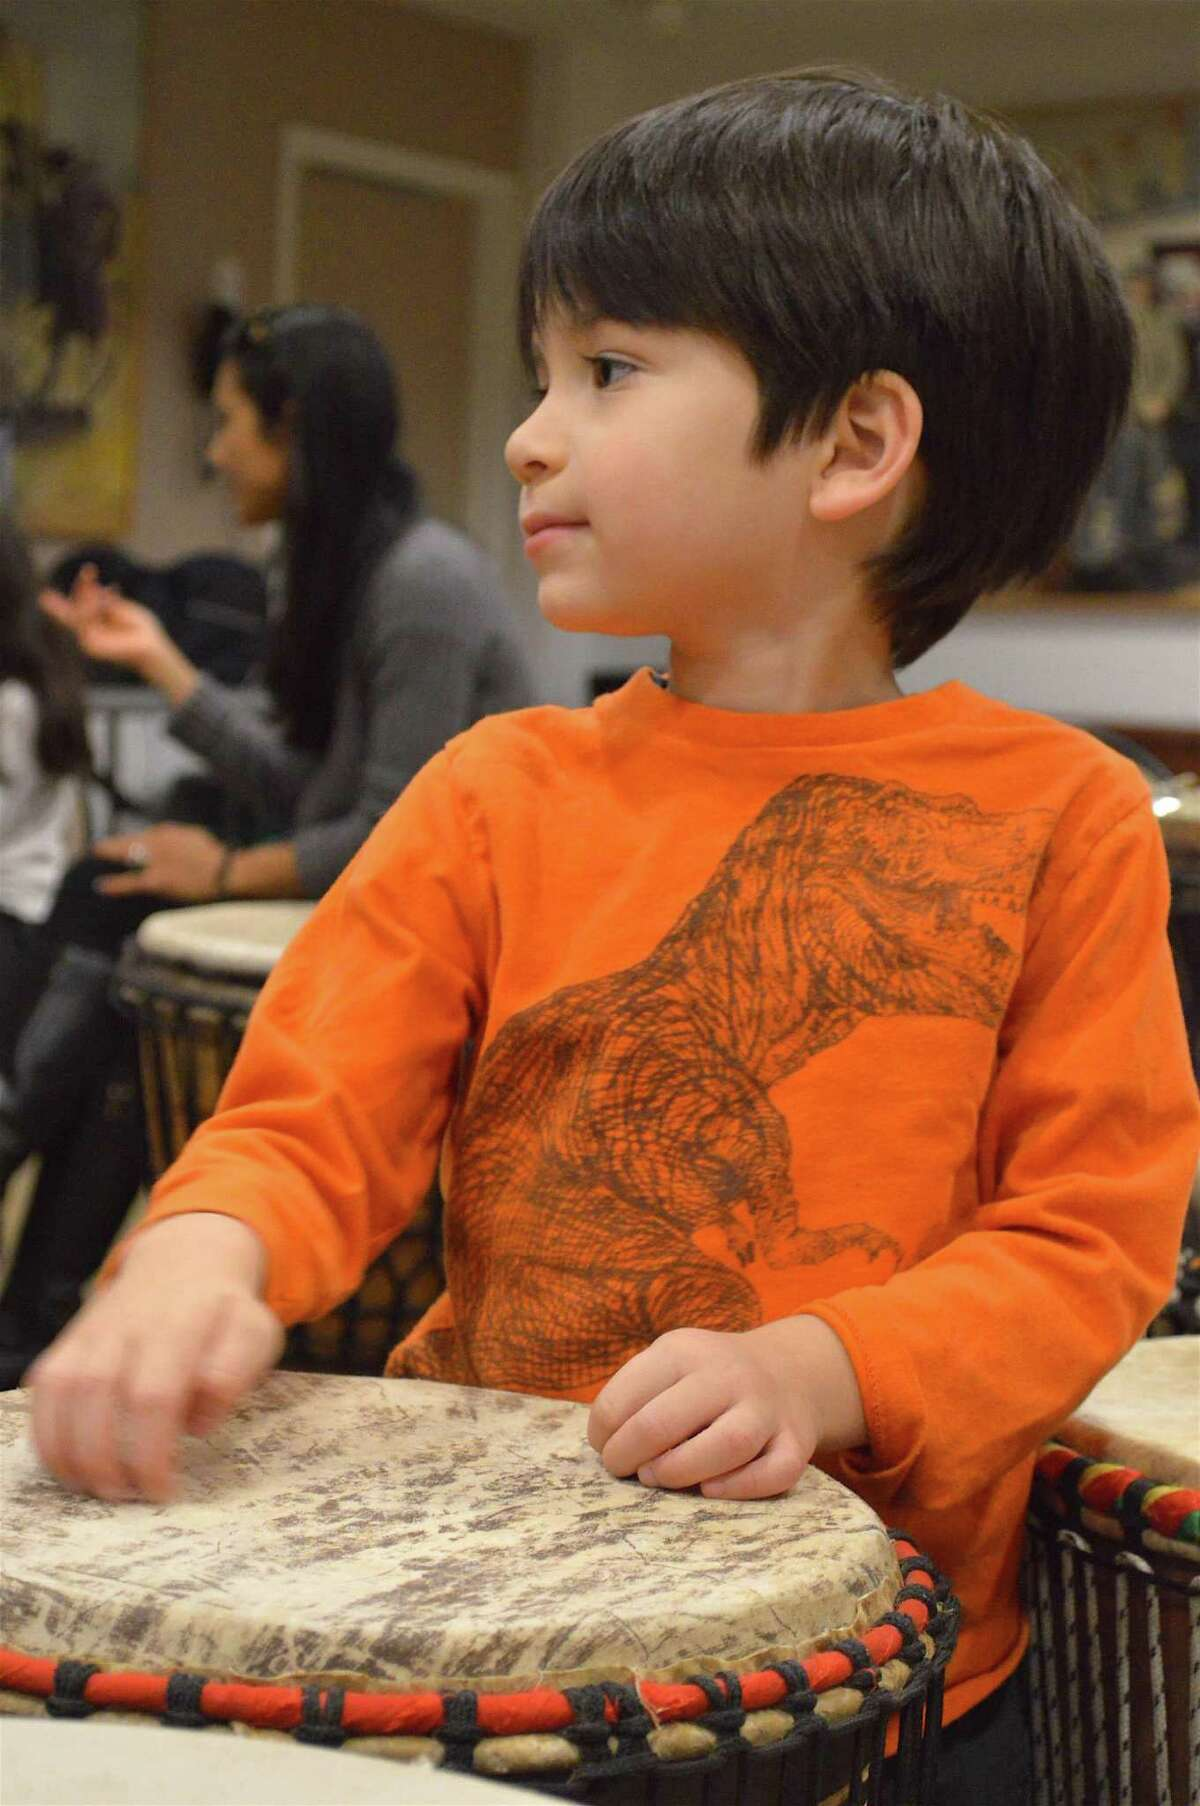 Elijah Green, 4, of Port Washington, N.Y., tests a drum at the Family Drum Circle held at New Canaan Library Saturday, Nov. 5, 2016, in New Canaan, Conn.